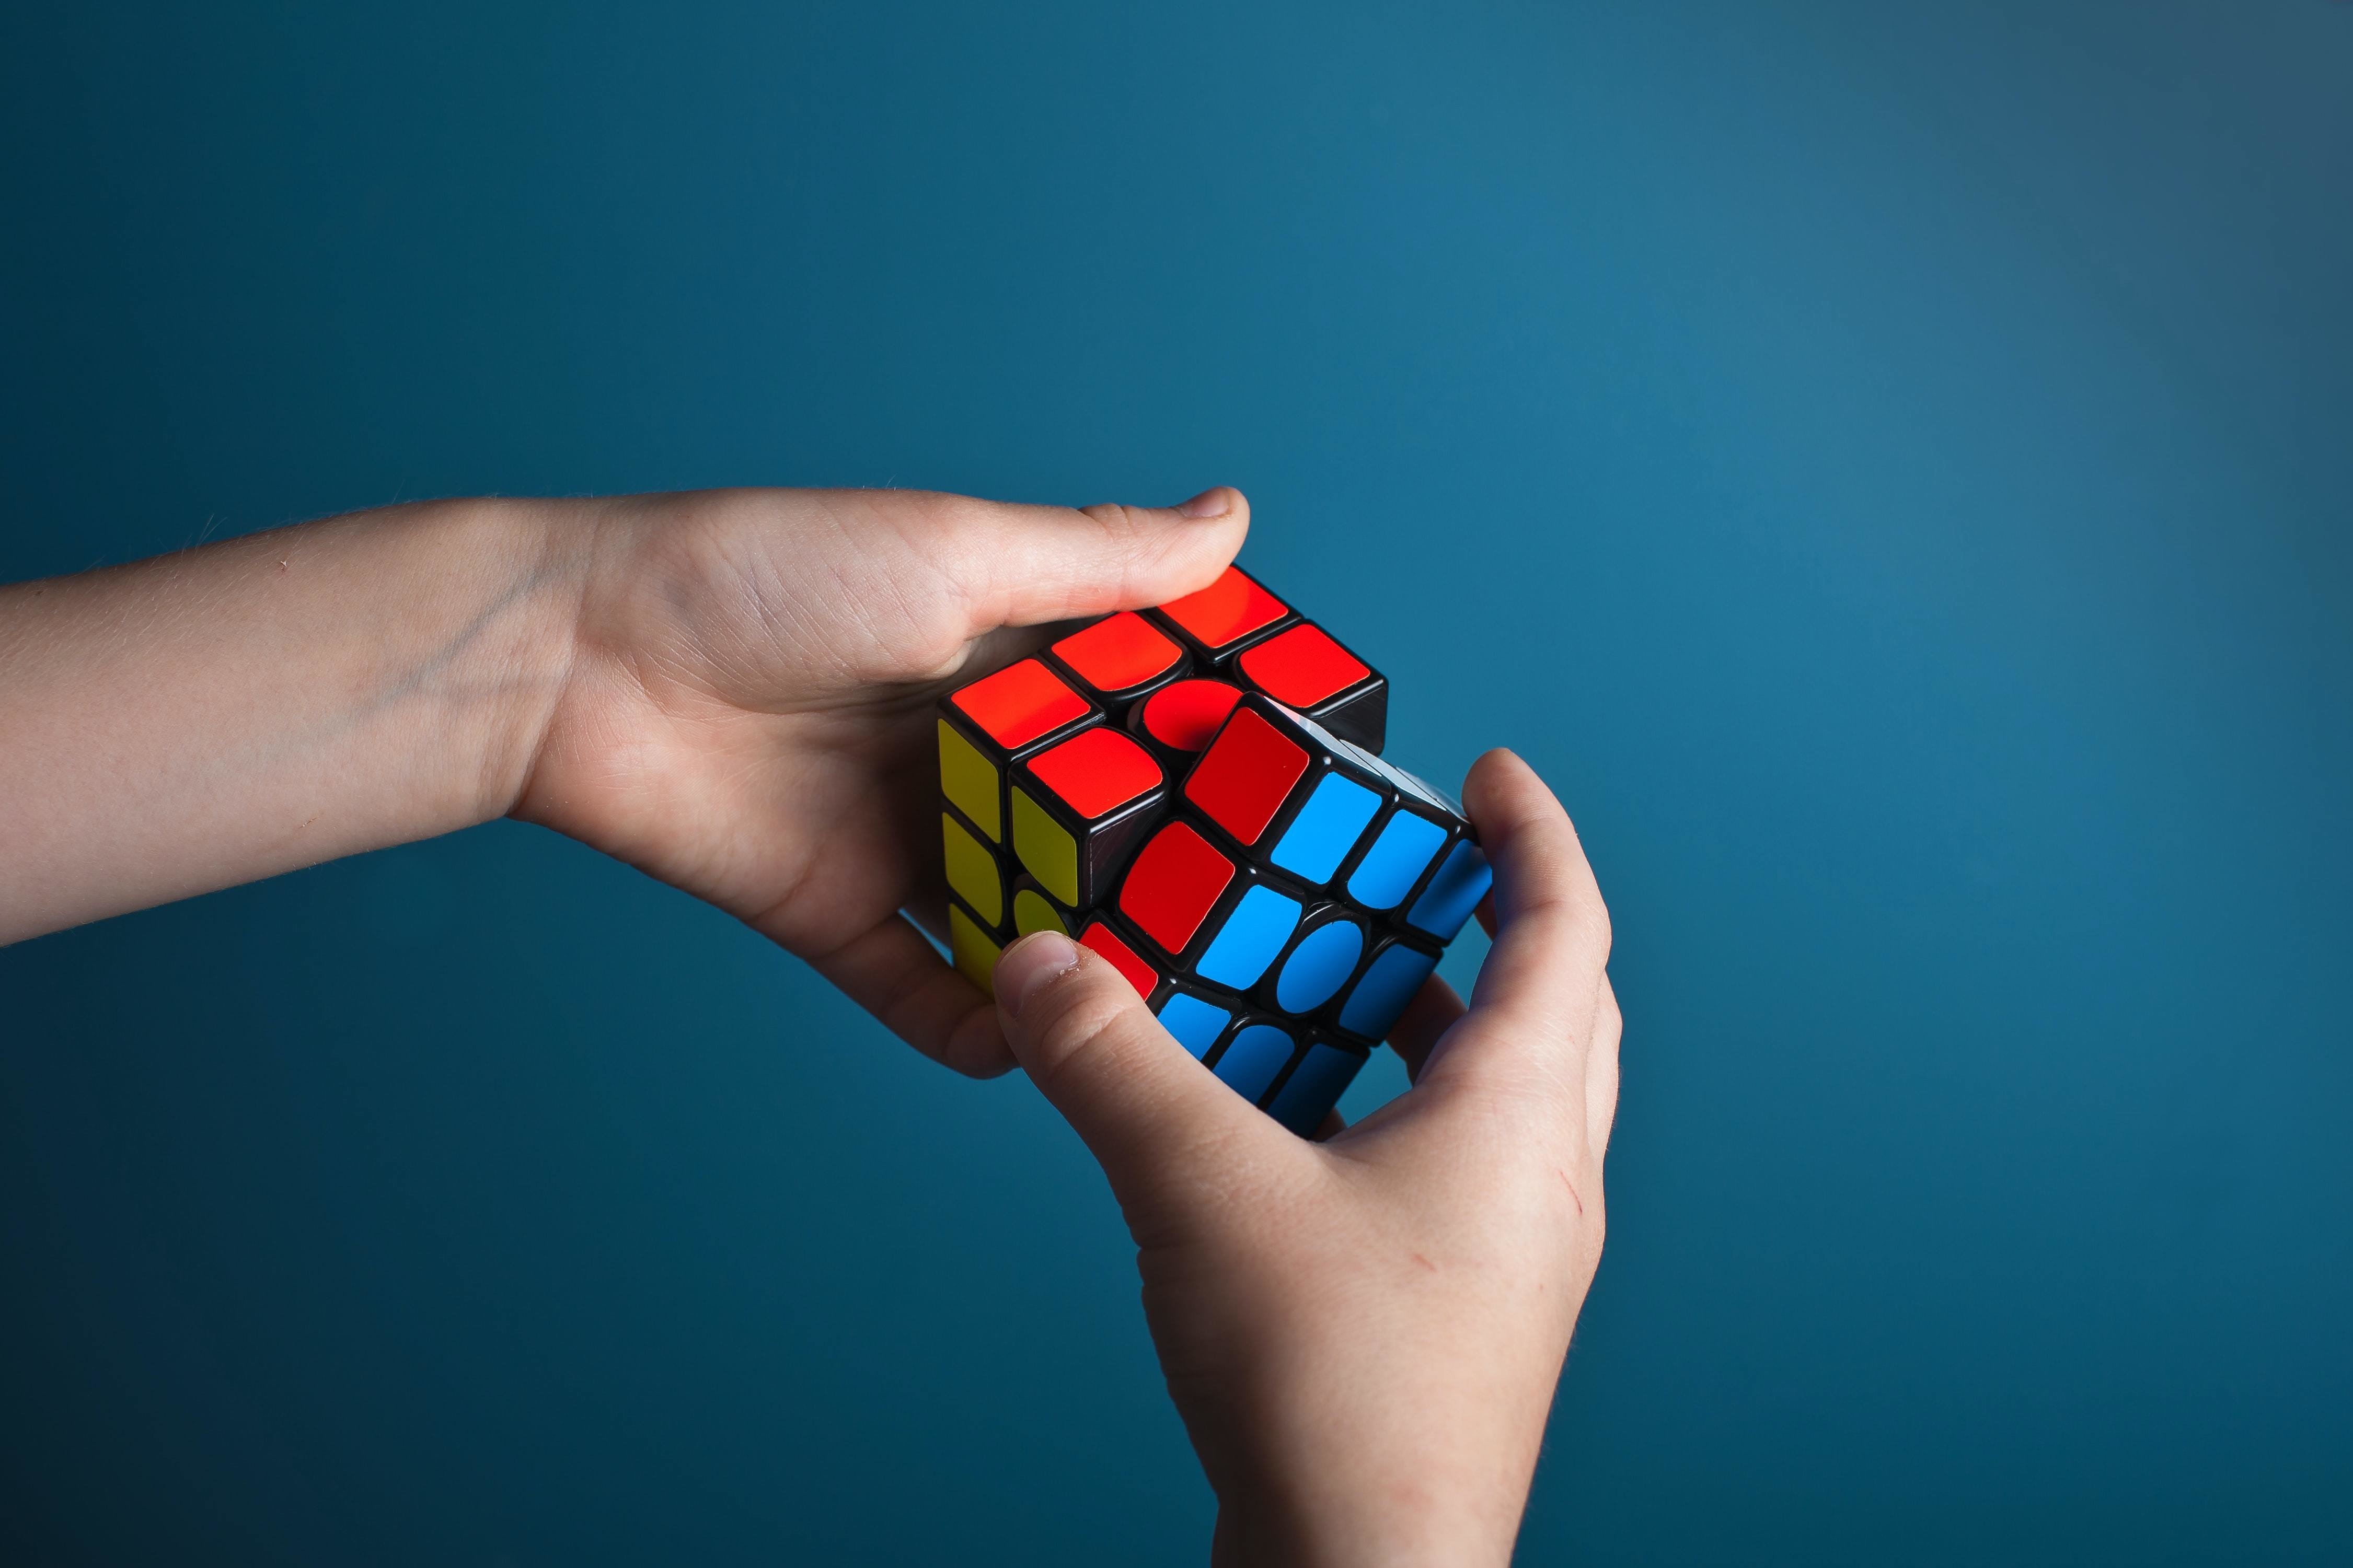 natural capabilities, like this person's ability to solve puzzles, can be fine increased - however, harnessing your raw intelligence requires different cognitive methods